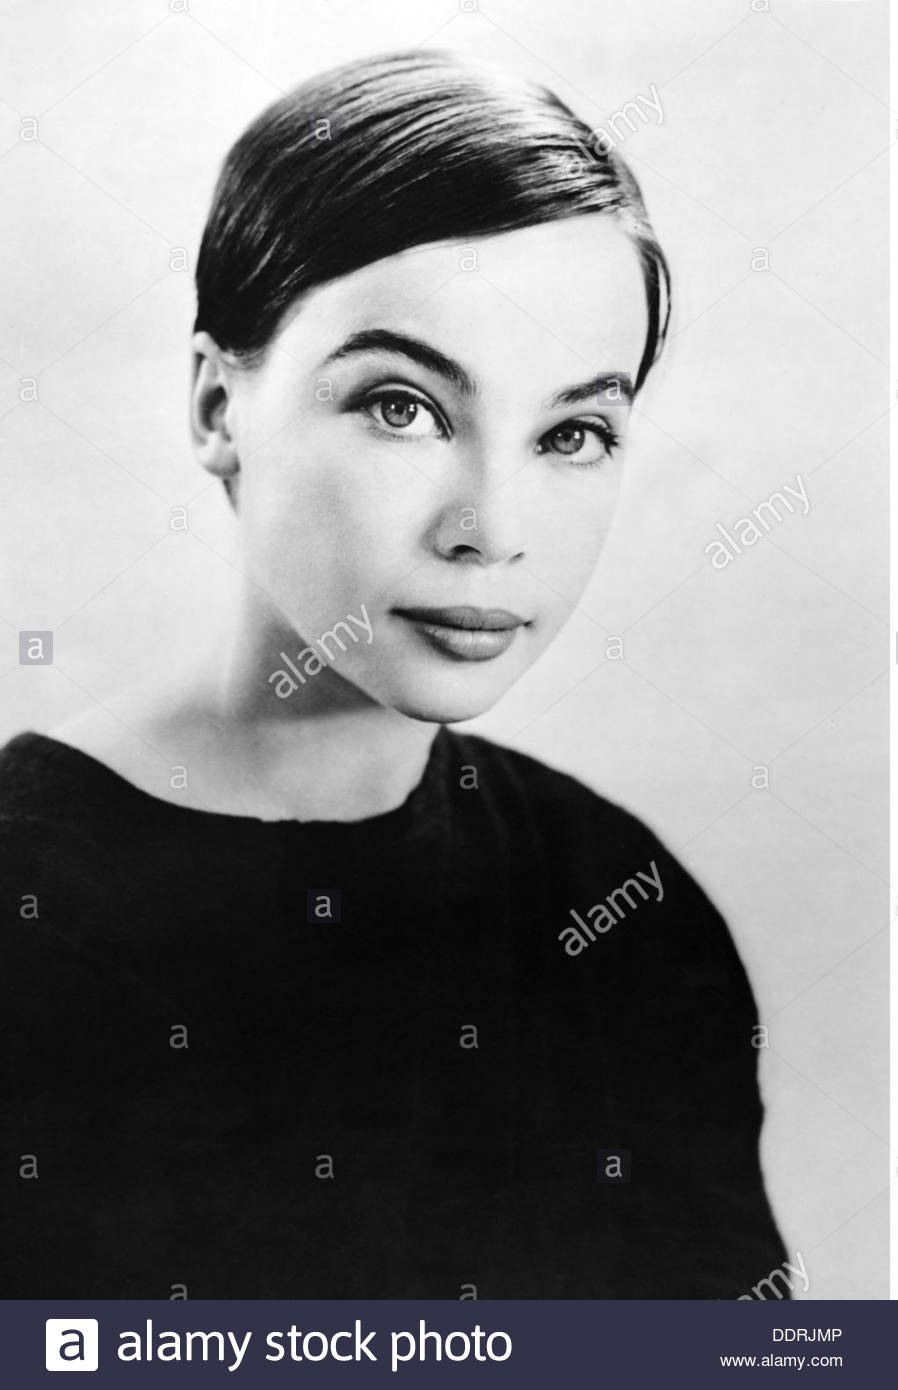 1950s Hairstyles Stock Photos 1950s Hairstyles Stock Images Alamy